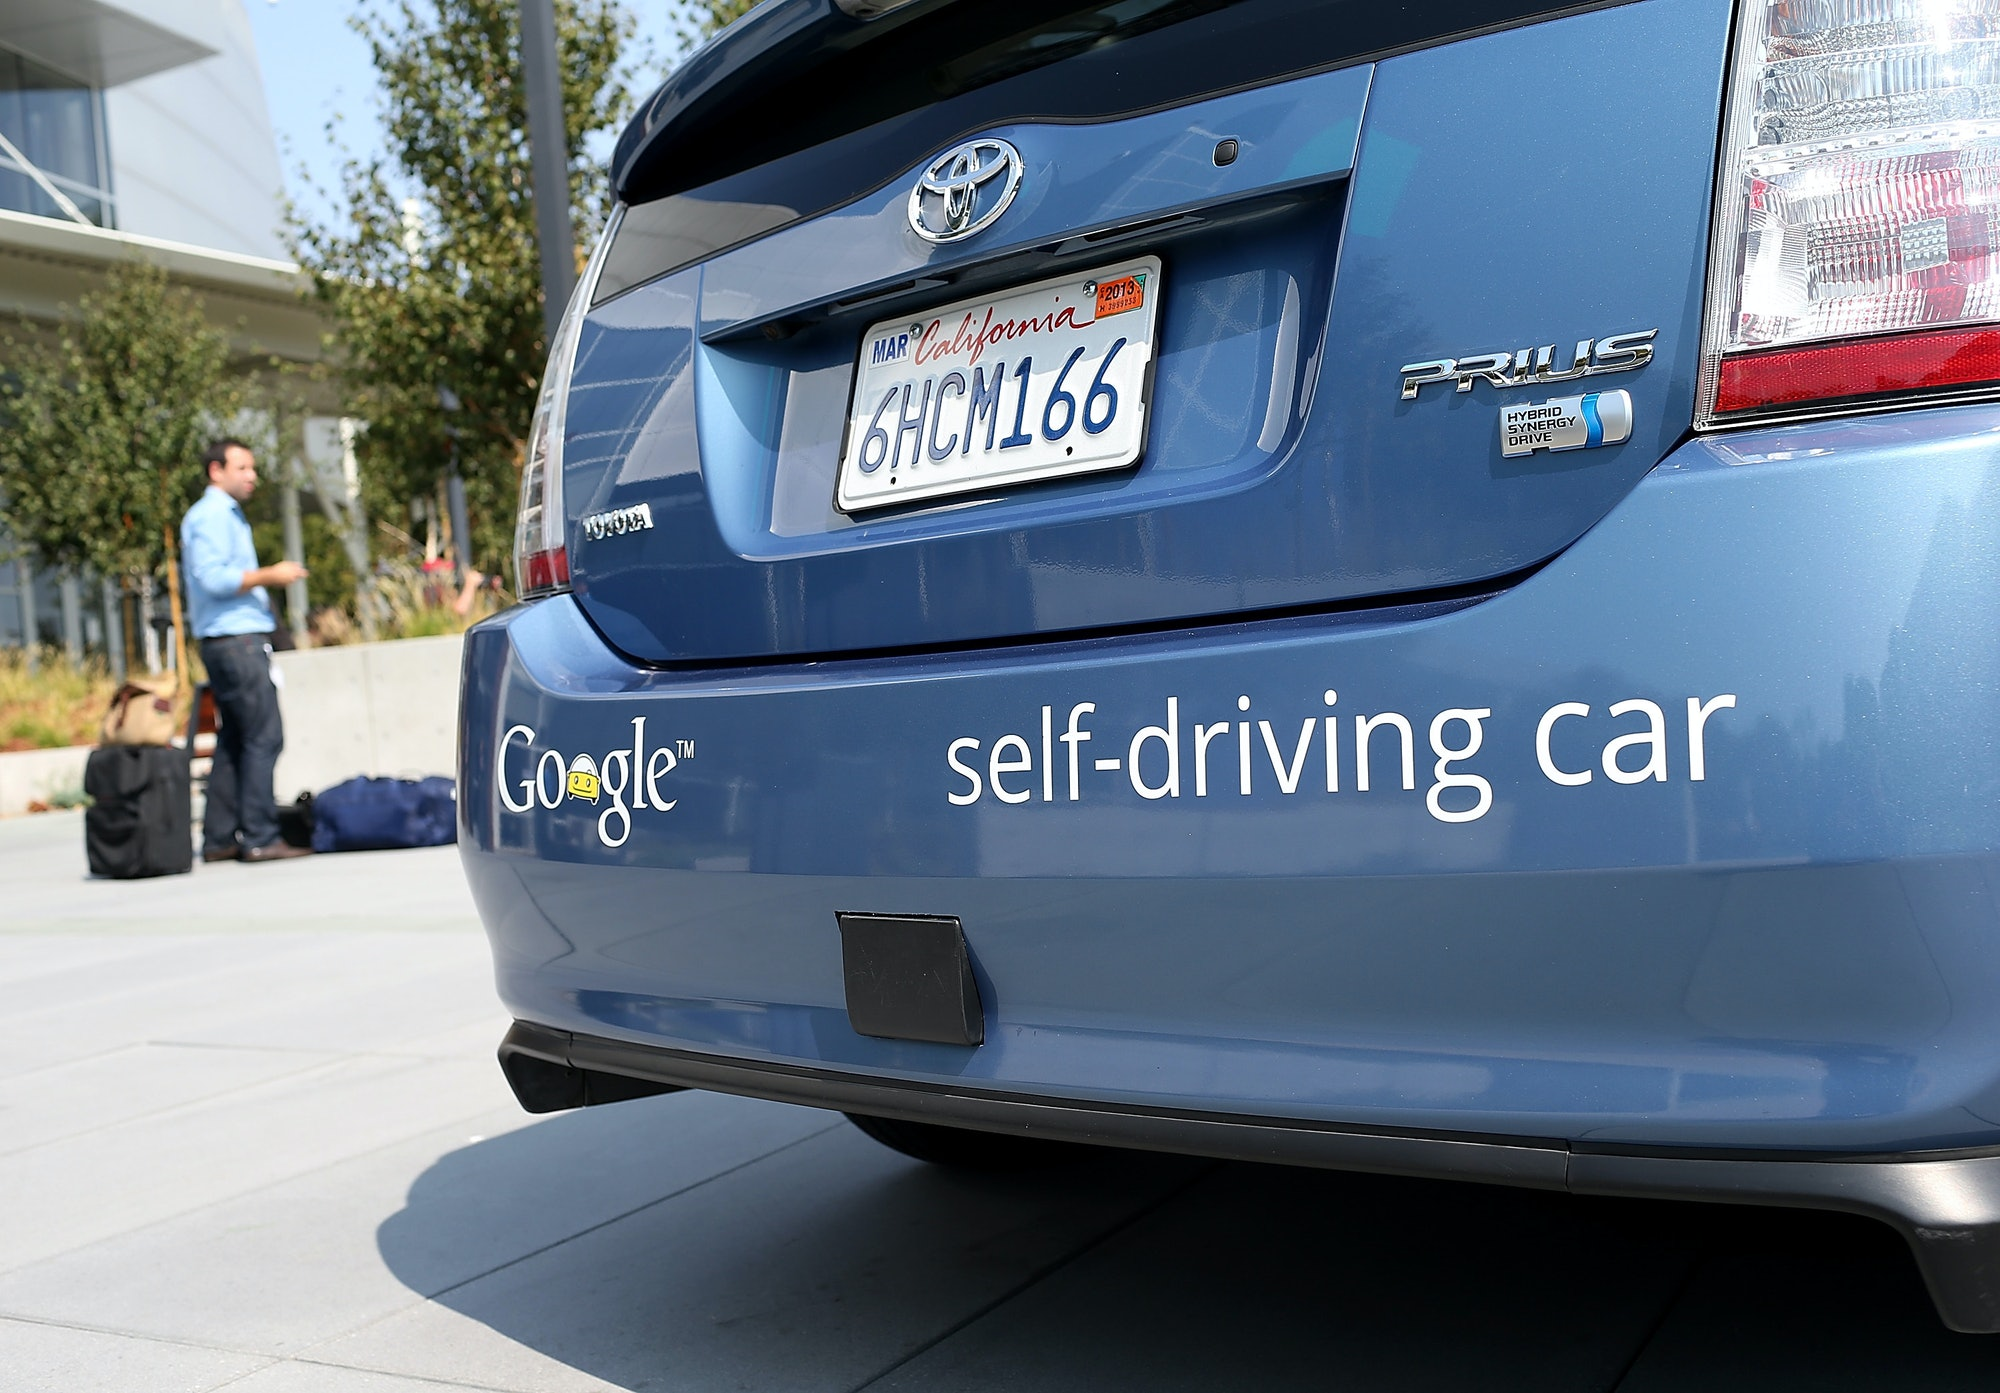 MOUNTAIN VIEW, CA - SEPTEMBER 25: A Google self-driving car is displayed at the Google headquarters on September 25,2012in Mountain View, California. California Gov. Jerry Brown signed State Senate Bill 1298 that allows driverless cars to operate on public roads for testing purposes. The bill also calls for the Department of Motor Vehicles to adopt regulations that govern licensing, bonding, testing and operation of the driverless vehicles before January 2015. (Photo by Justin Sullivan/Getty Images)